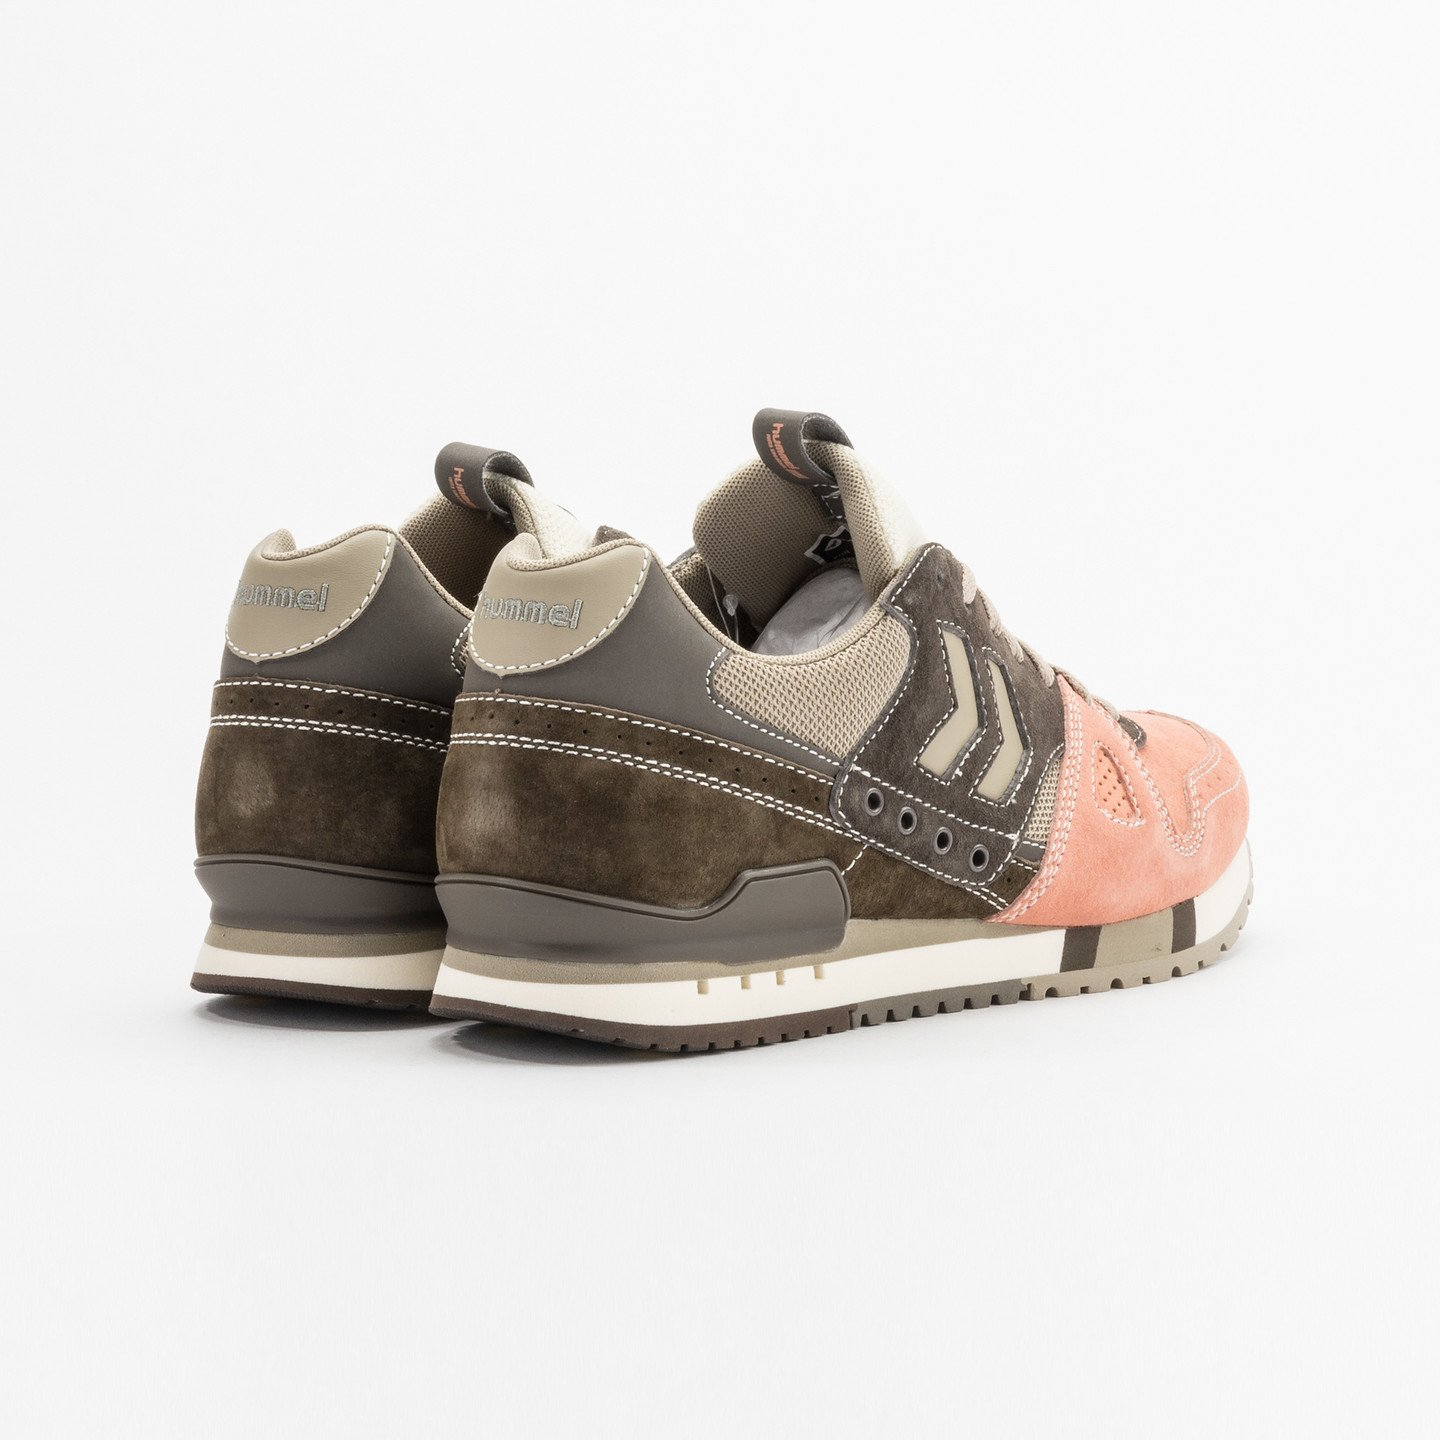 Hummel Marathona OG Mita 'Danish Salmon' Chinchilla / Salmon 63603-1515-39